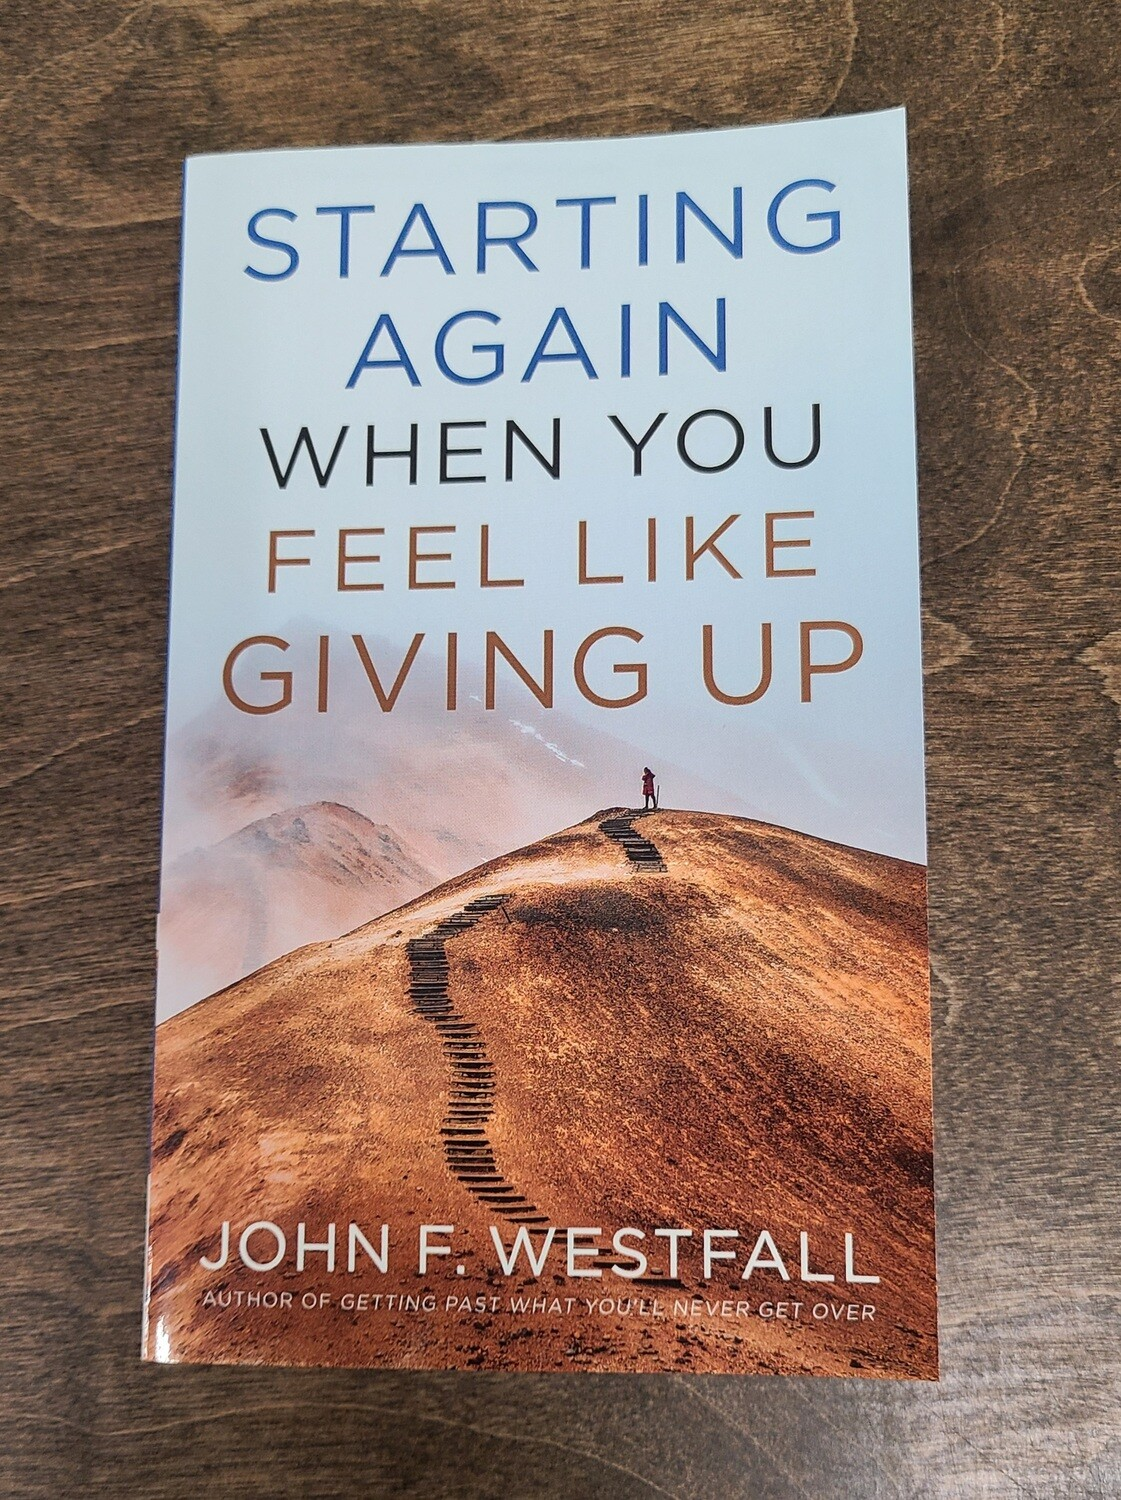 Starting Again When You Feel Like Giving Up by John F. Westfall